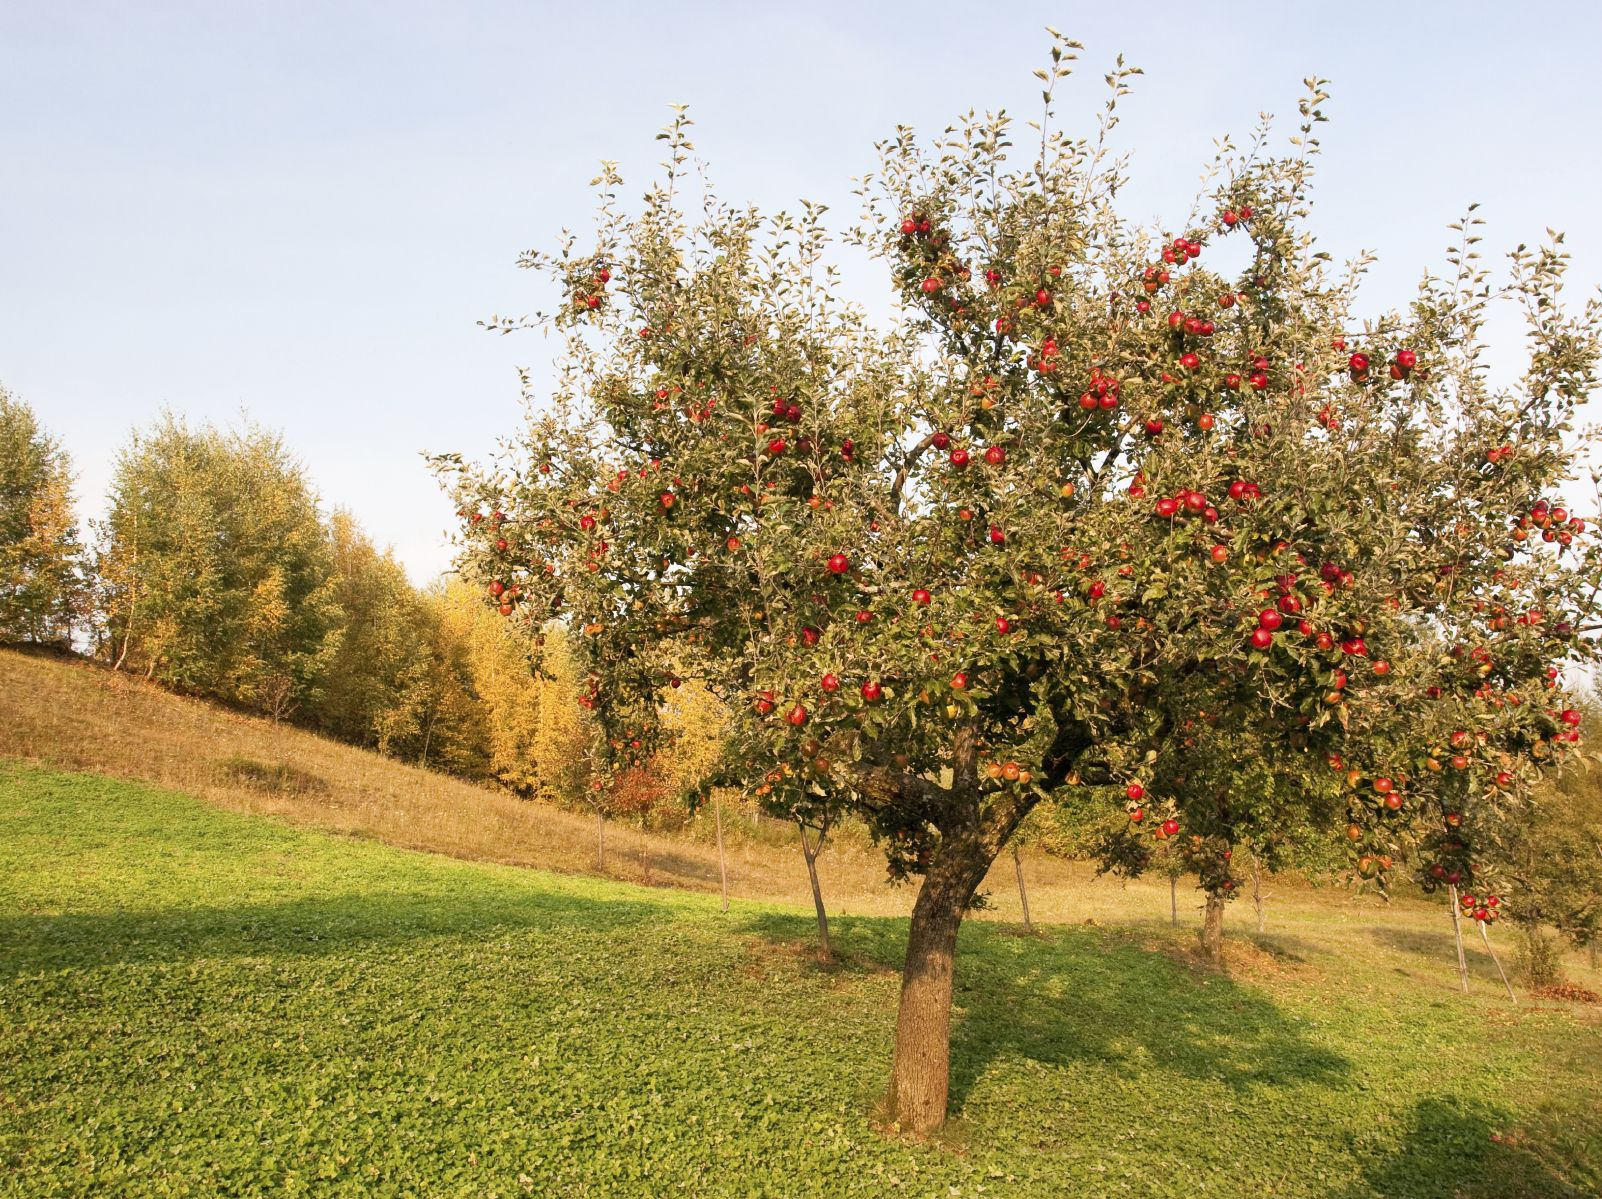 Tips to help make growing apples an enjoyable experience.